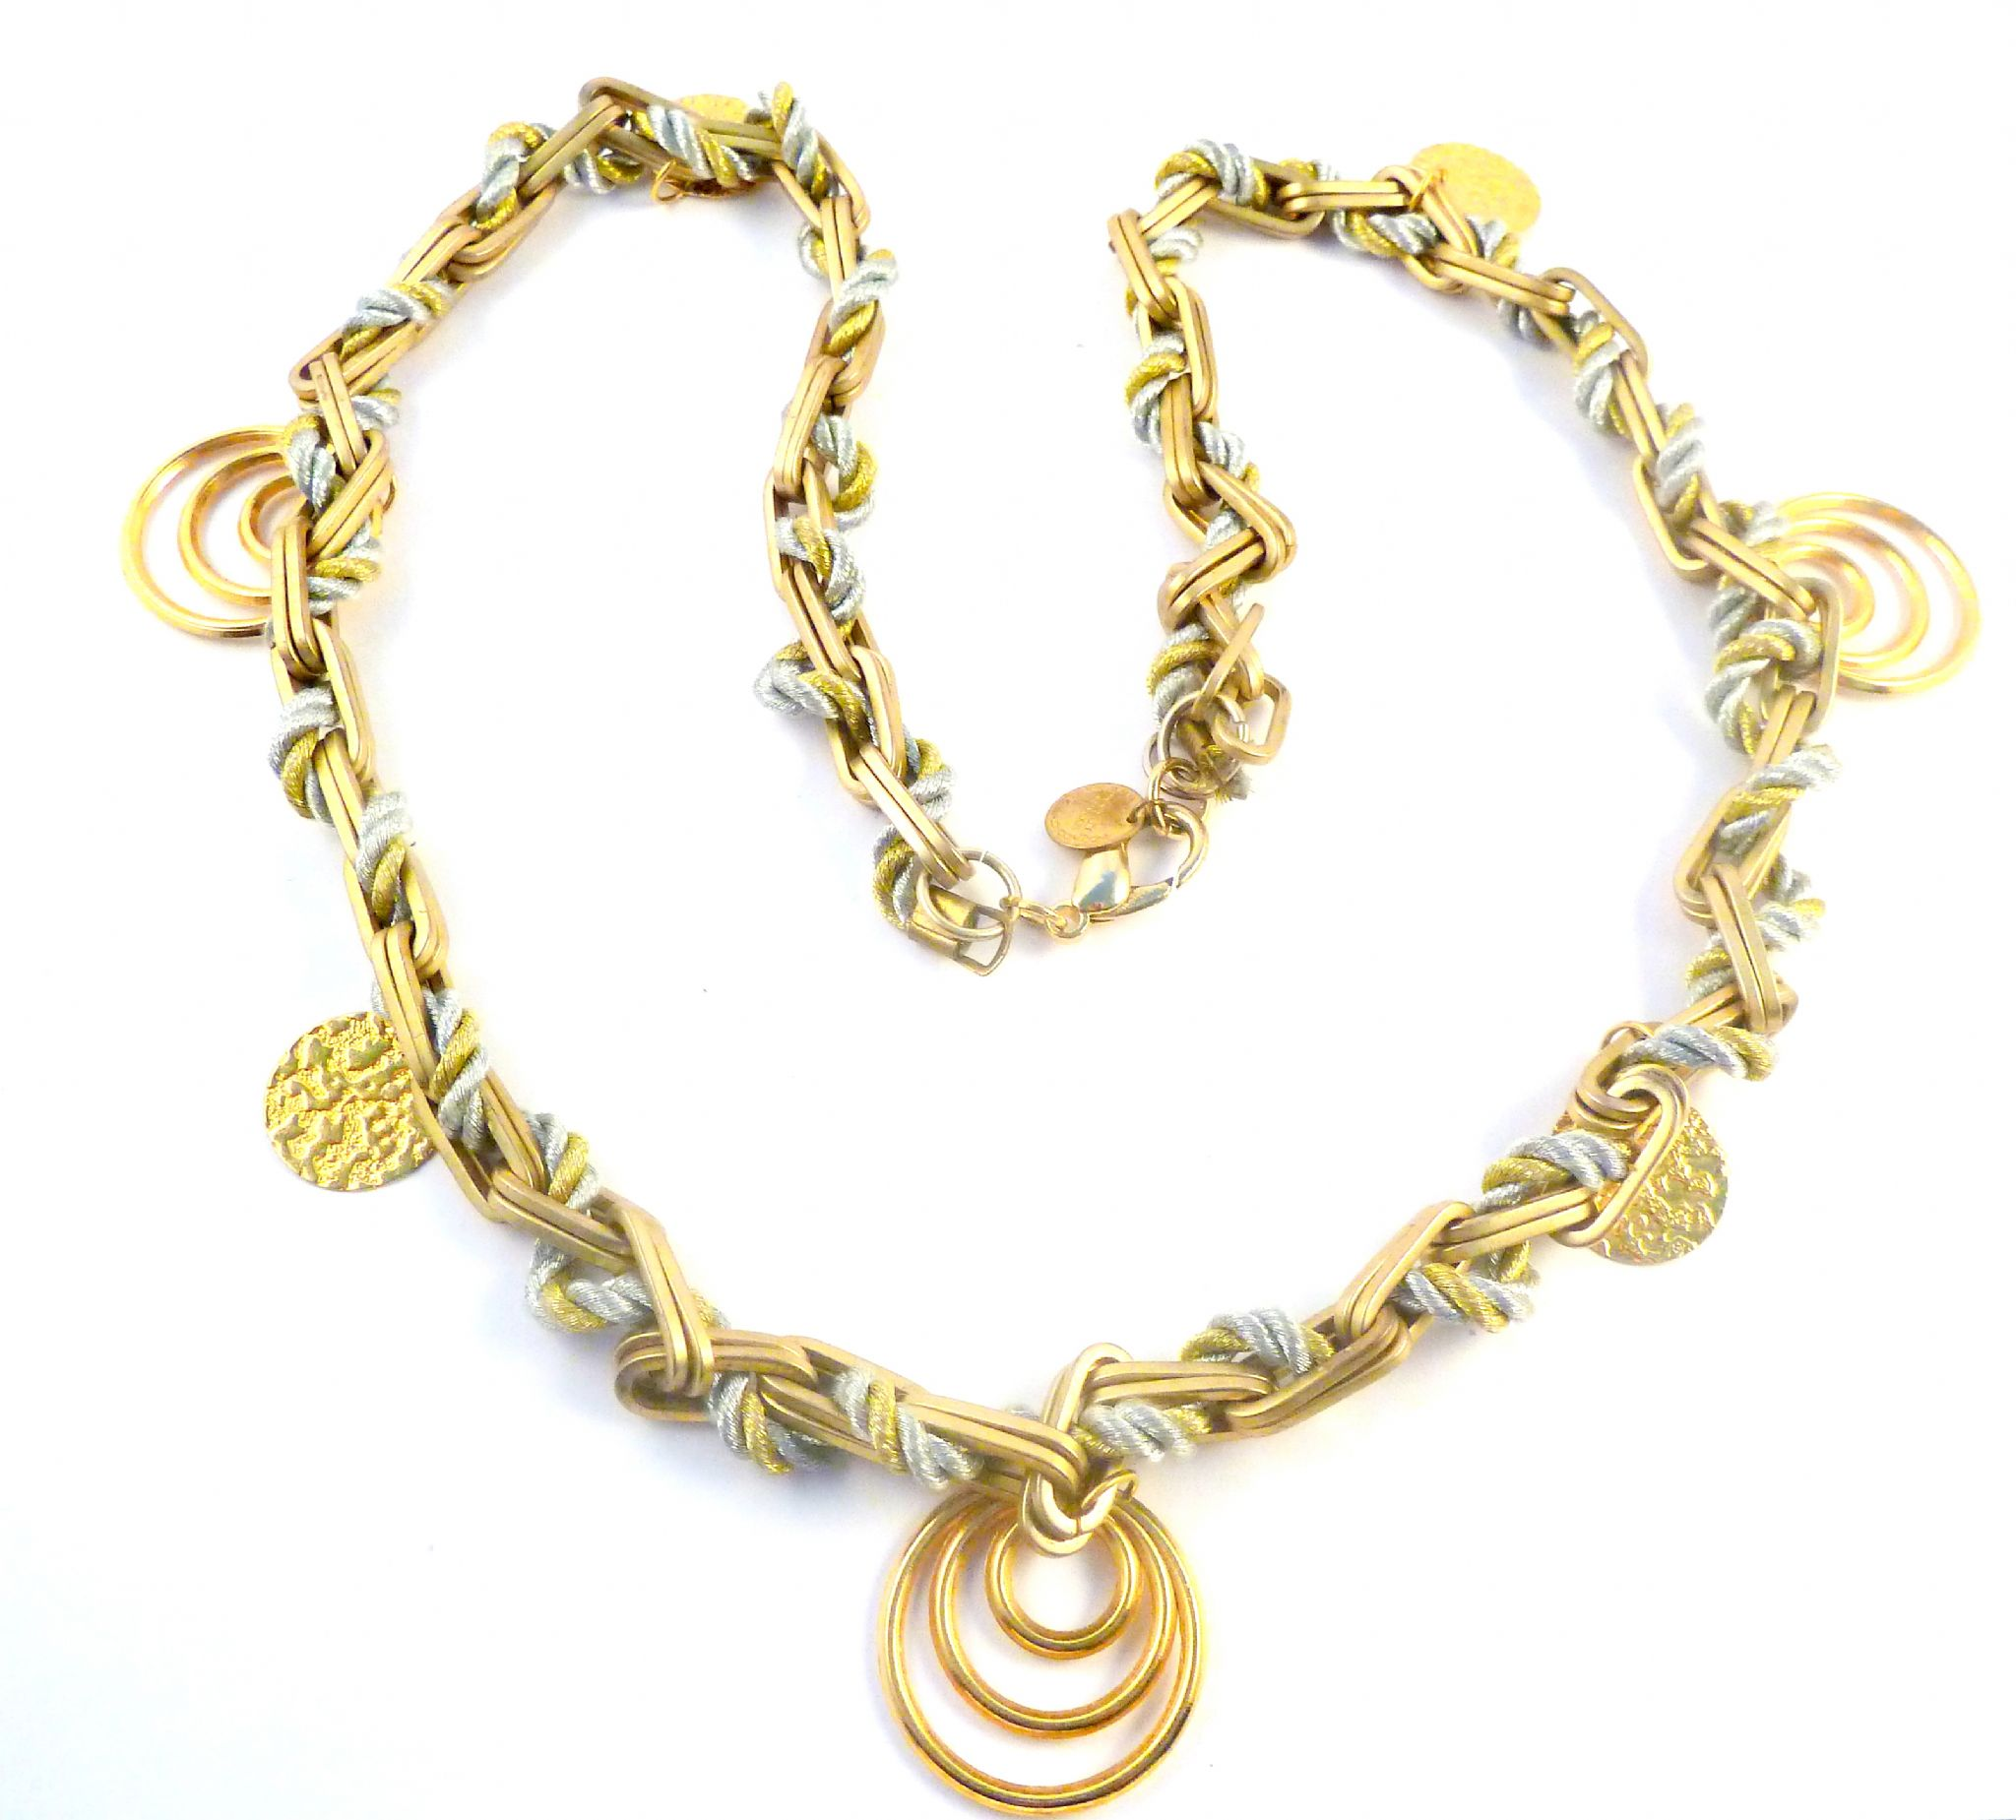 d71eddb51de019 Chunky Gold Spiral Bead Necklace By Anna Lou Of London.